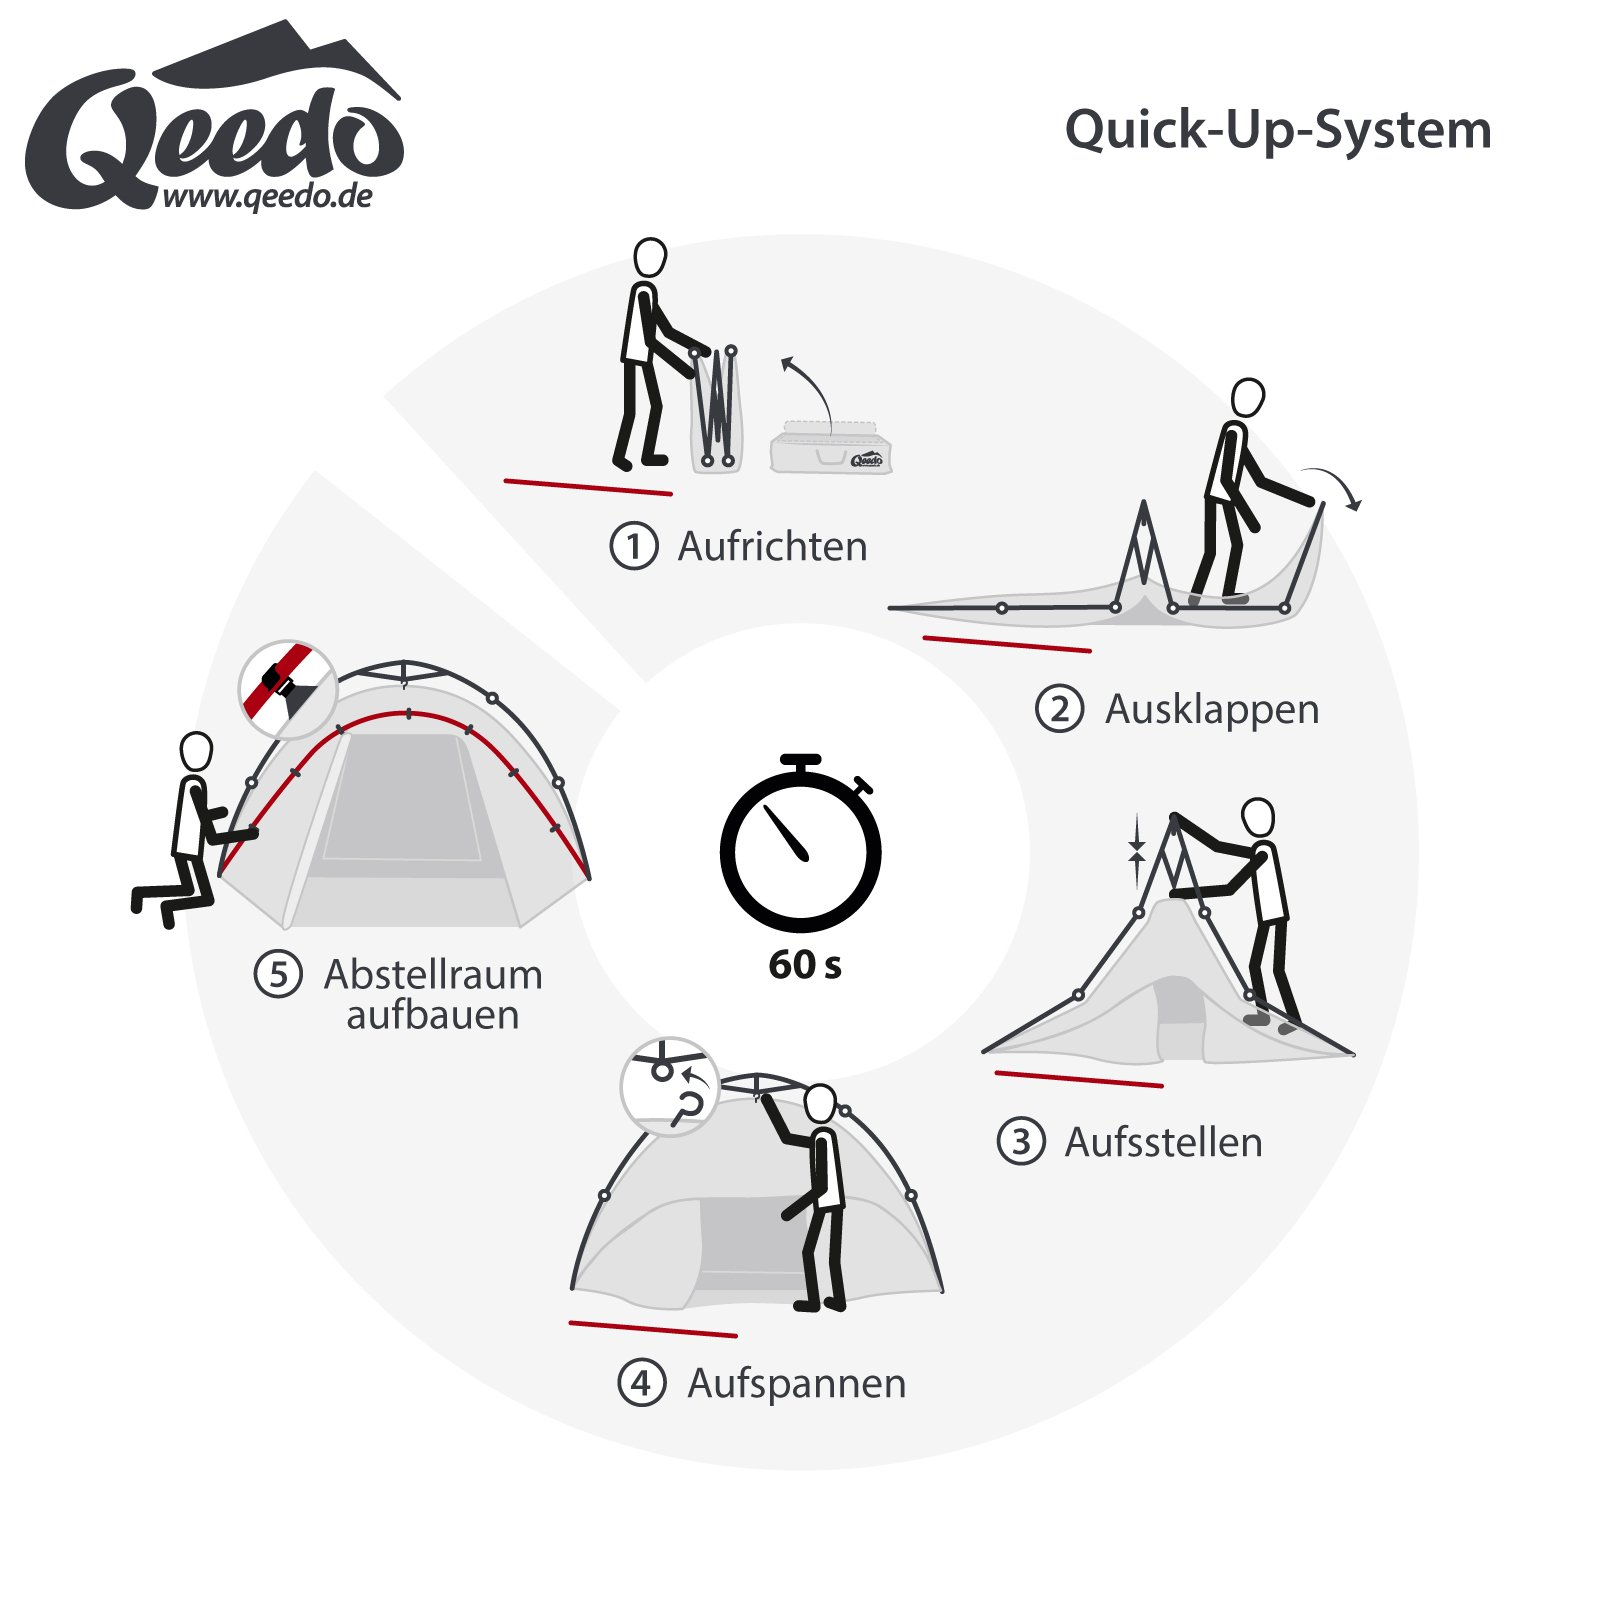 Qeedo Quick Pine 3 Man Dome Tent Quick Up System Green